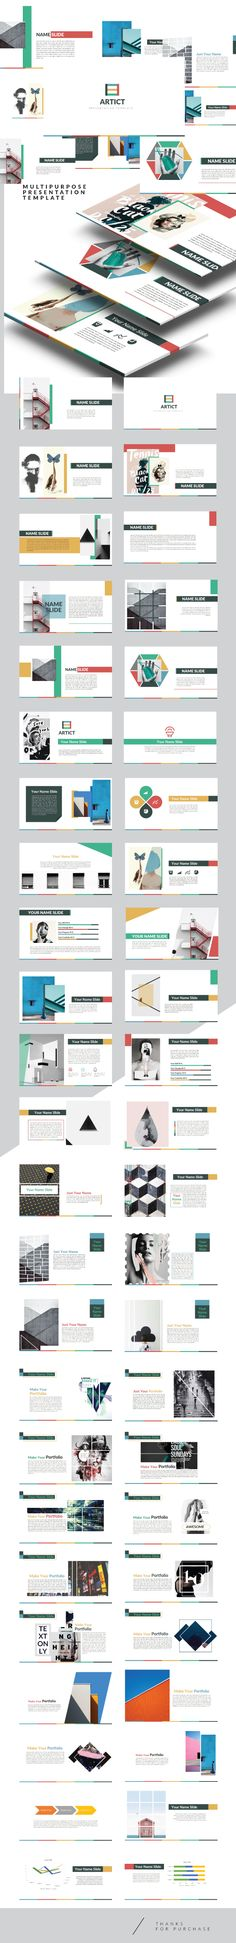 Artic - Multipurpose Powerpoint Creative template